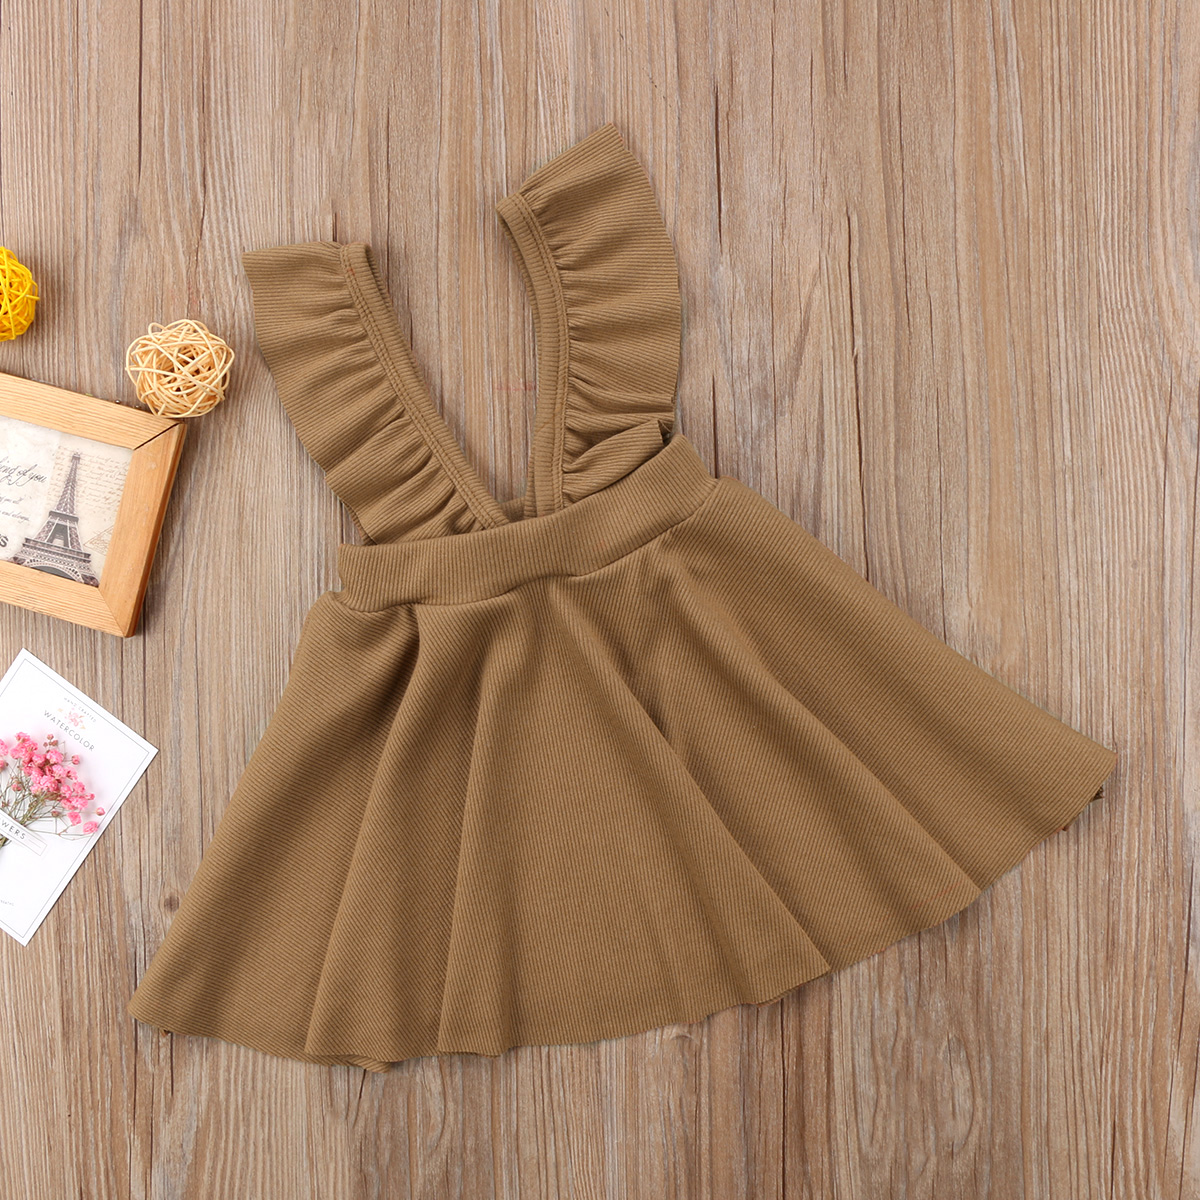 Overalls Newborn Baby Girls Knitting Wool Flower Strap Swing Dress Jumper  Dress Clothes Size 1 5T-in Dresses from Mother   Kids on Aliexpress.com  c9a3c188b16c